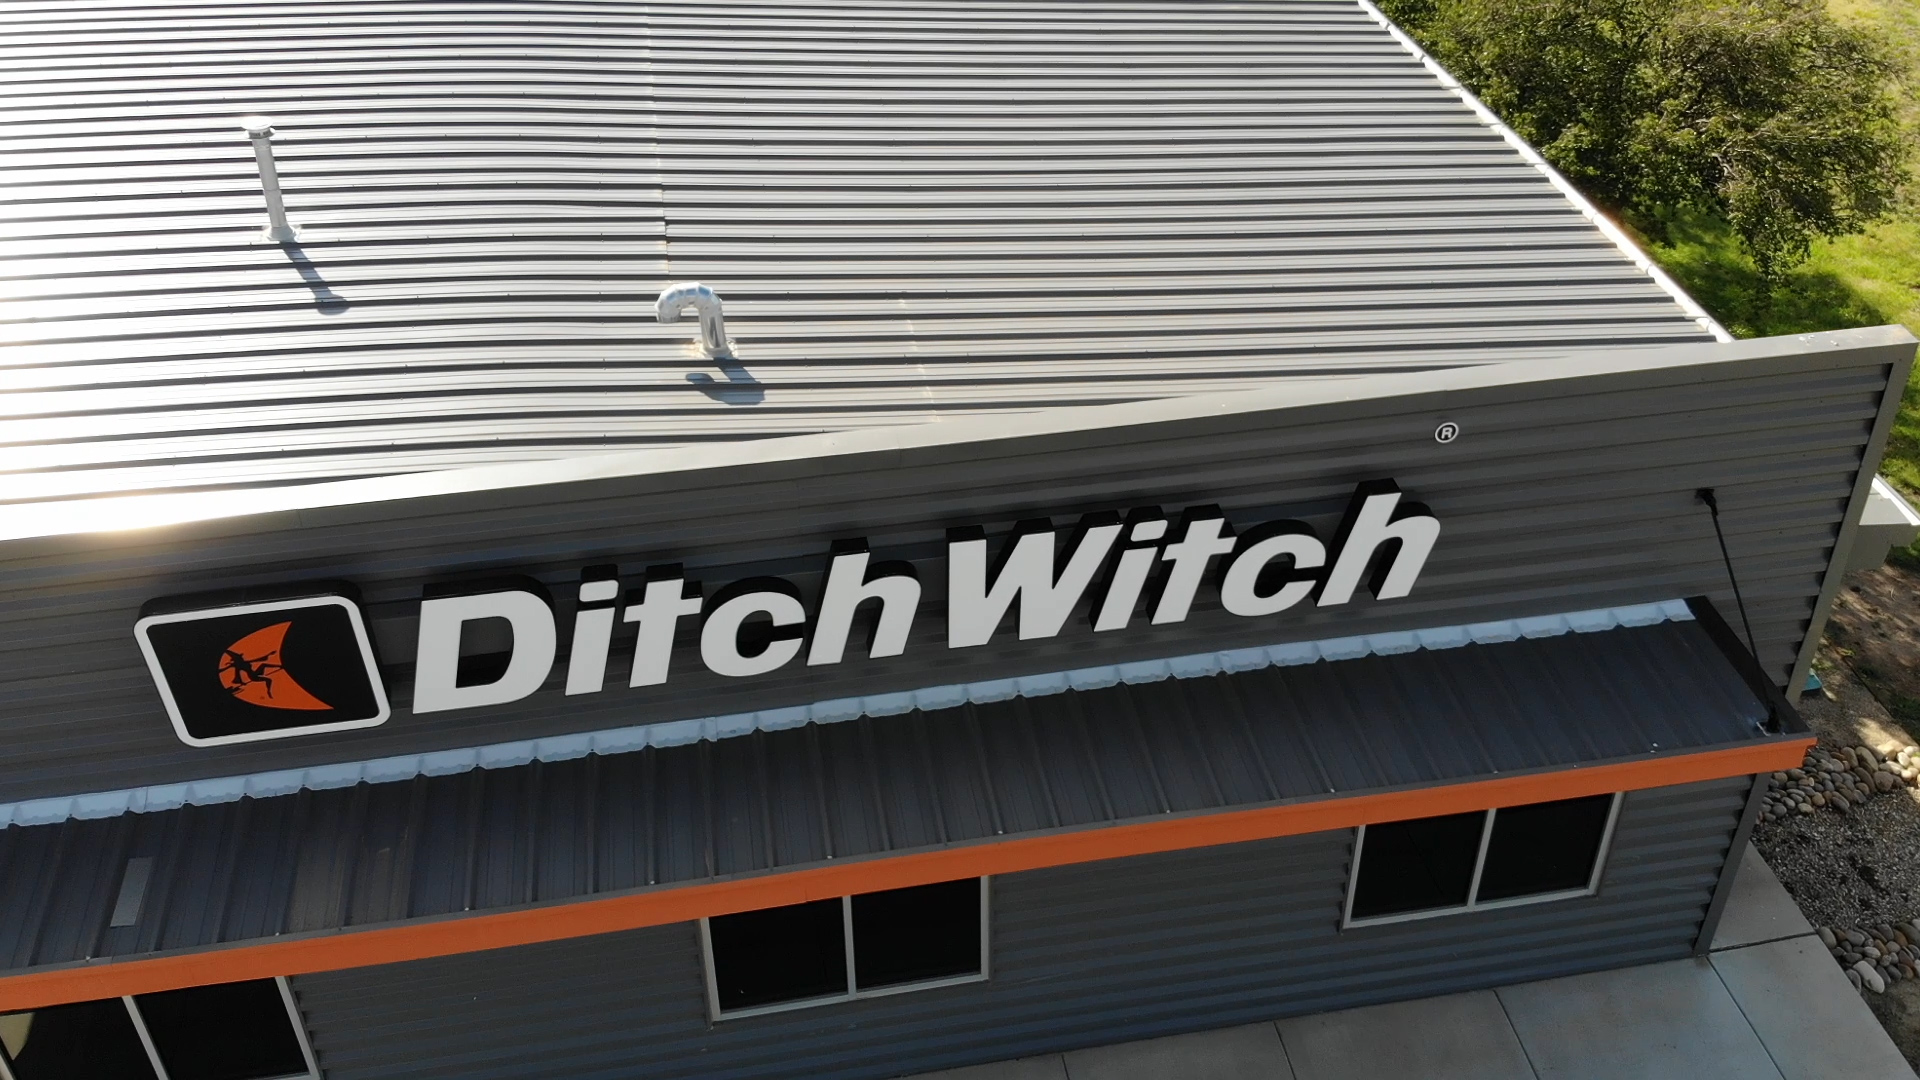 Ditch Witch roof from the air with sun shining on the metal